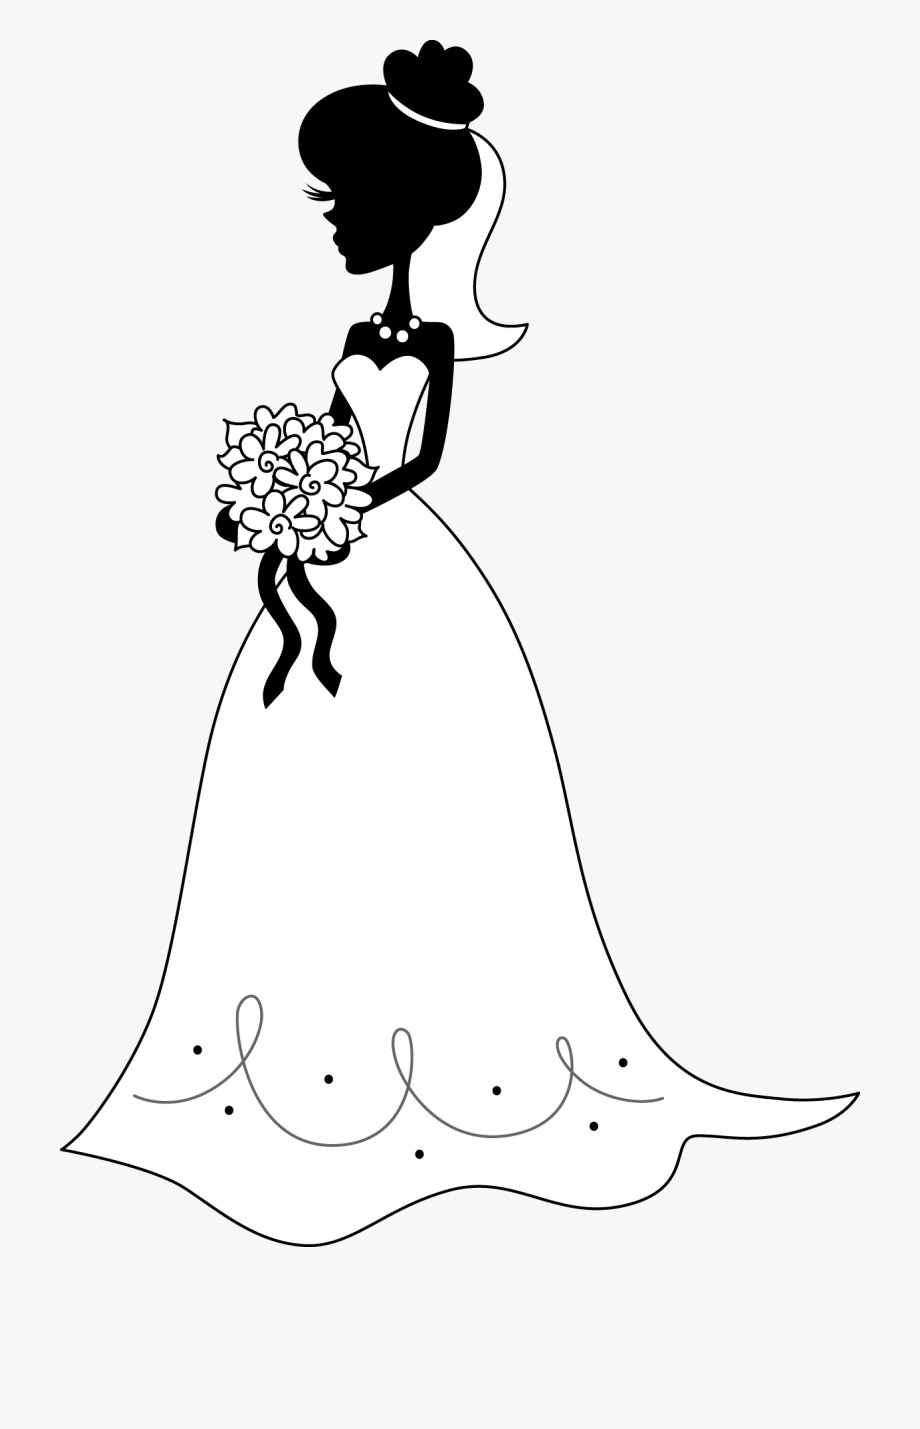 Bride Silhouette Stock Vectors, Clipart and Illustrations